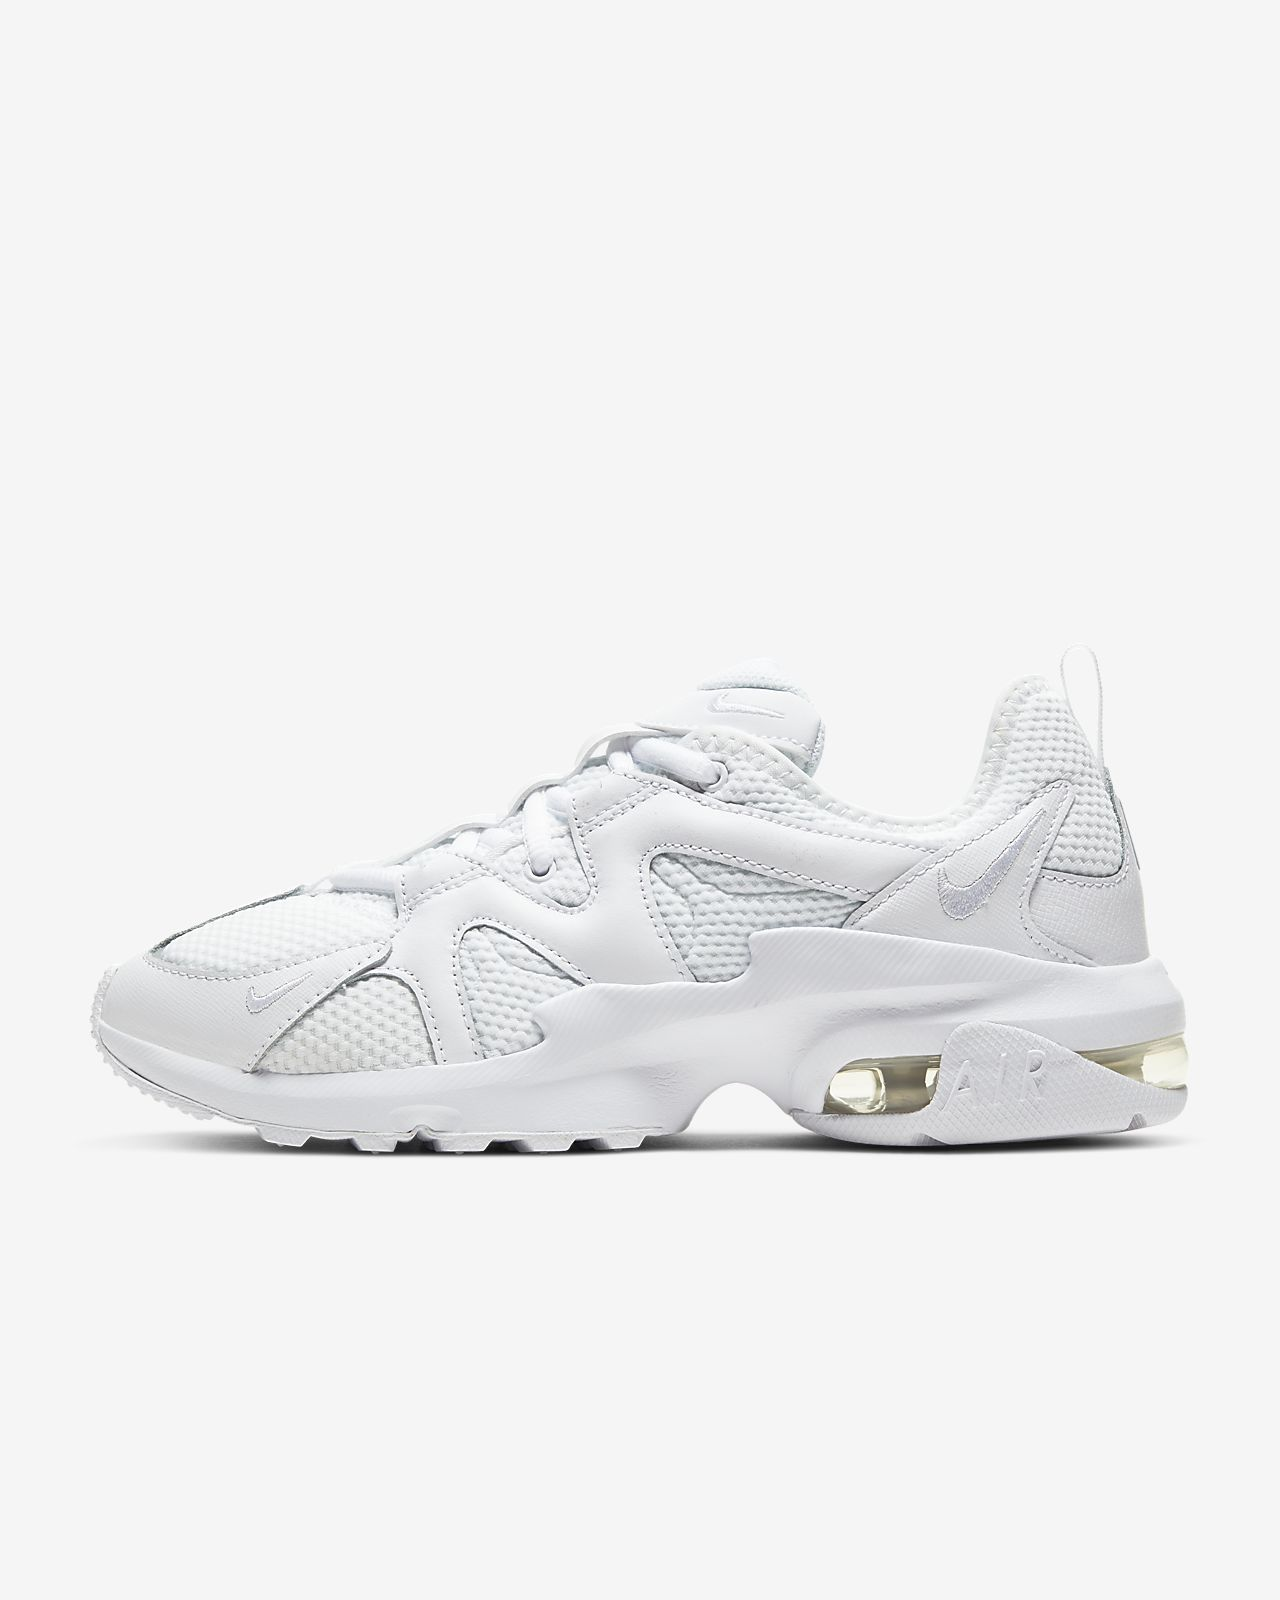 Nike Air Max Graviton Women's Shoe